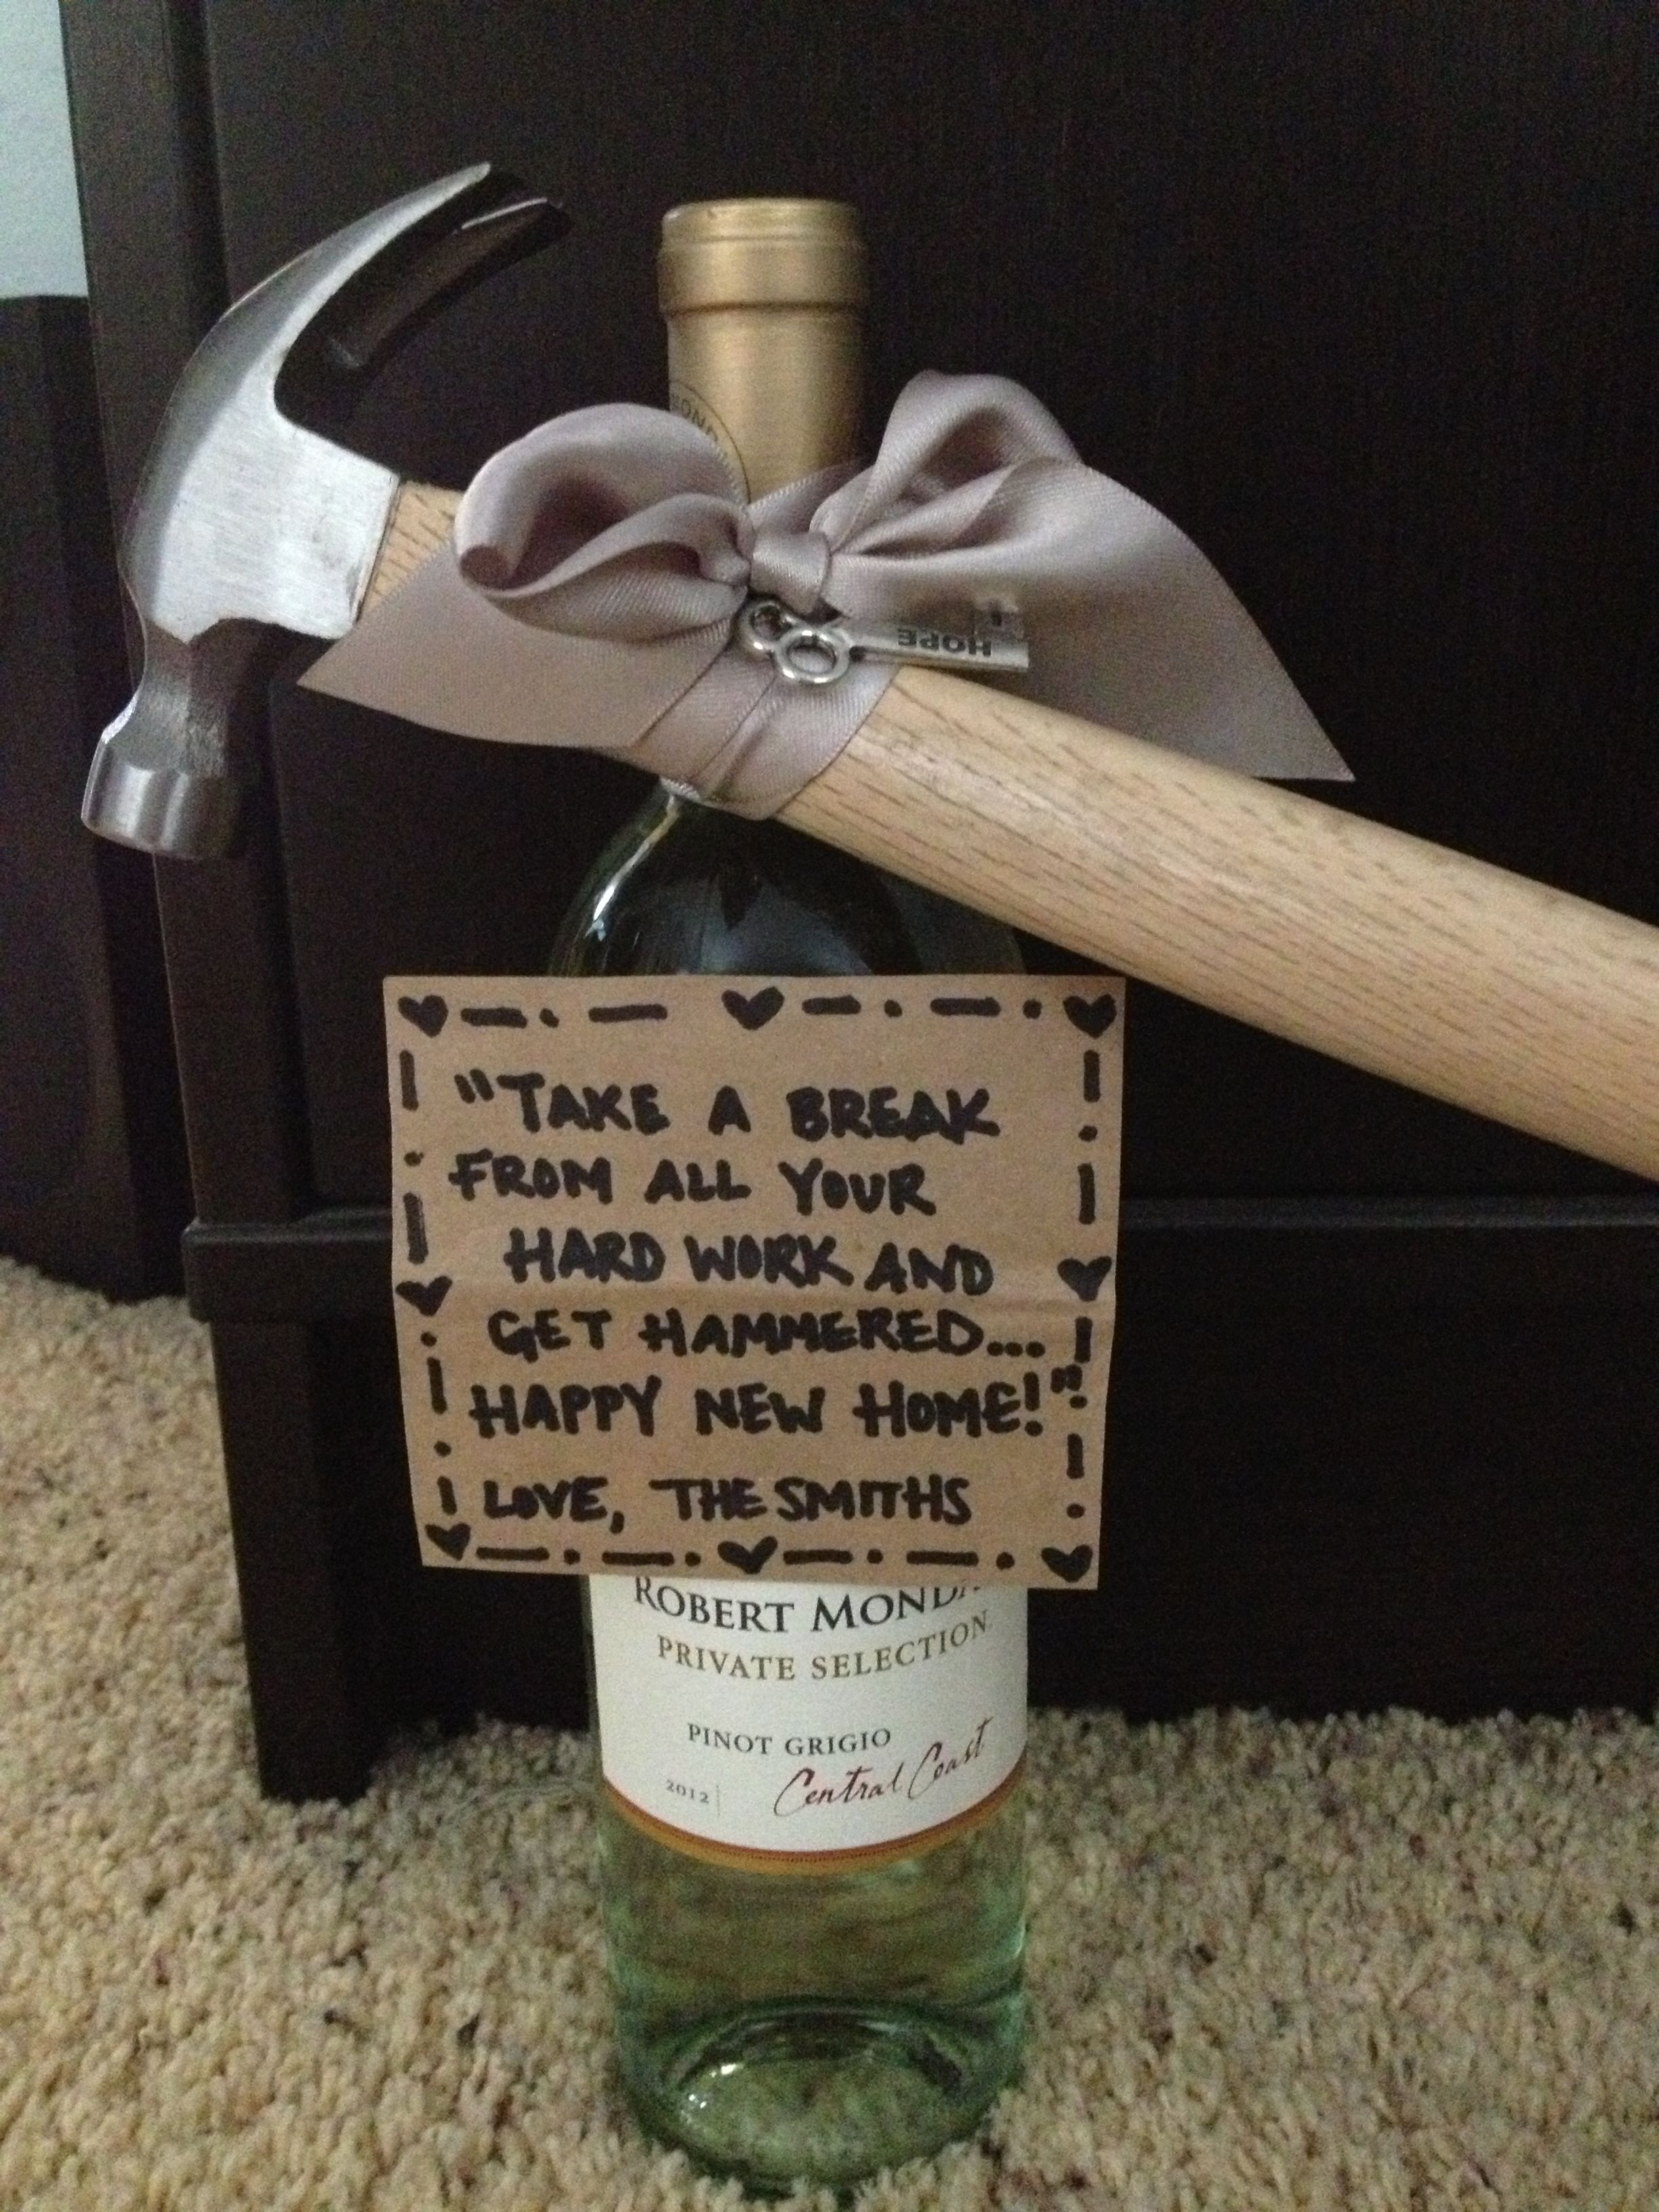 Such A Cute House Warming Gift Idea Hammer And Bottle Of Wine This Is Funny Write Take Break From All The Hard Work Get Hammered